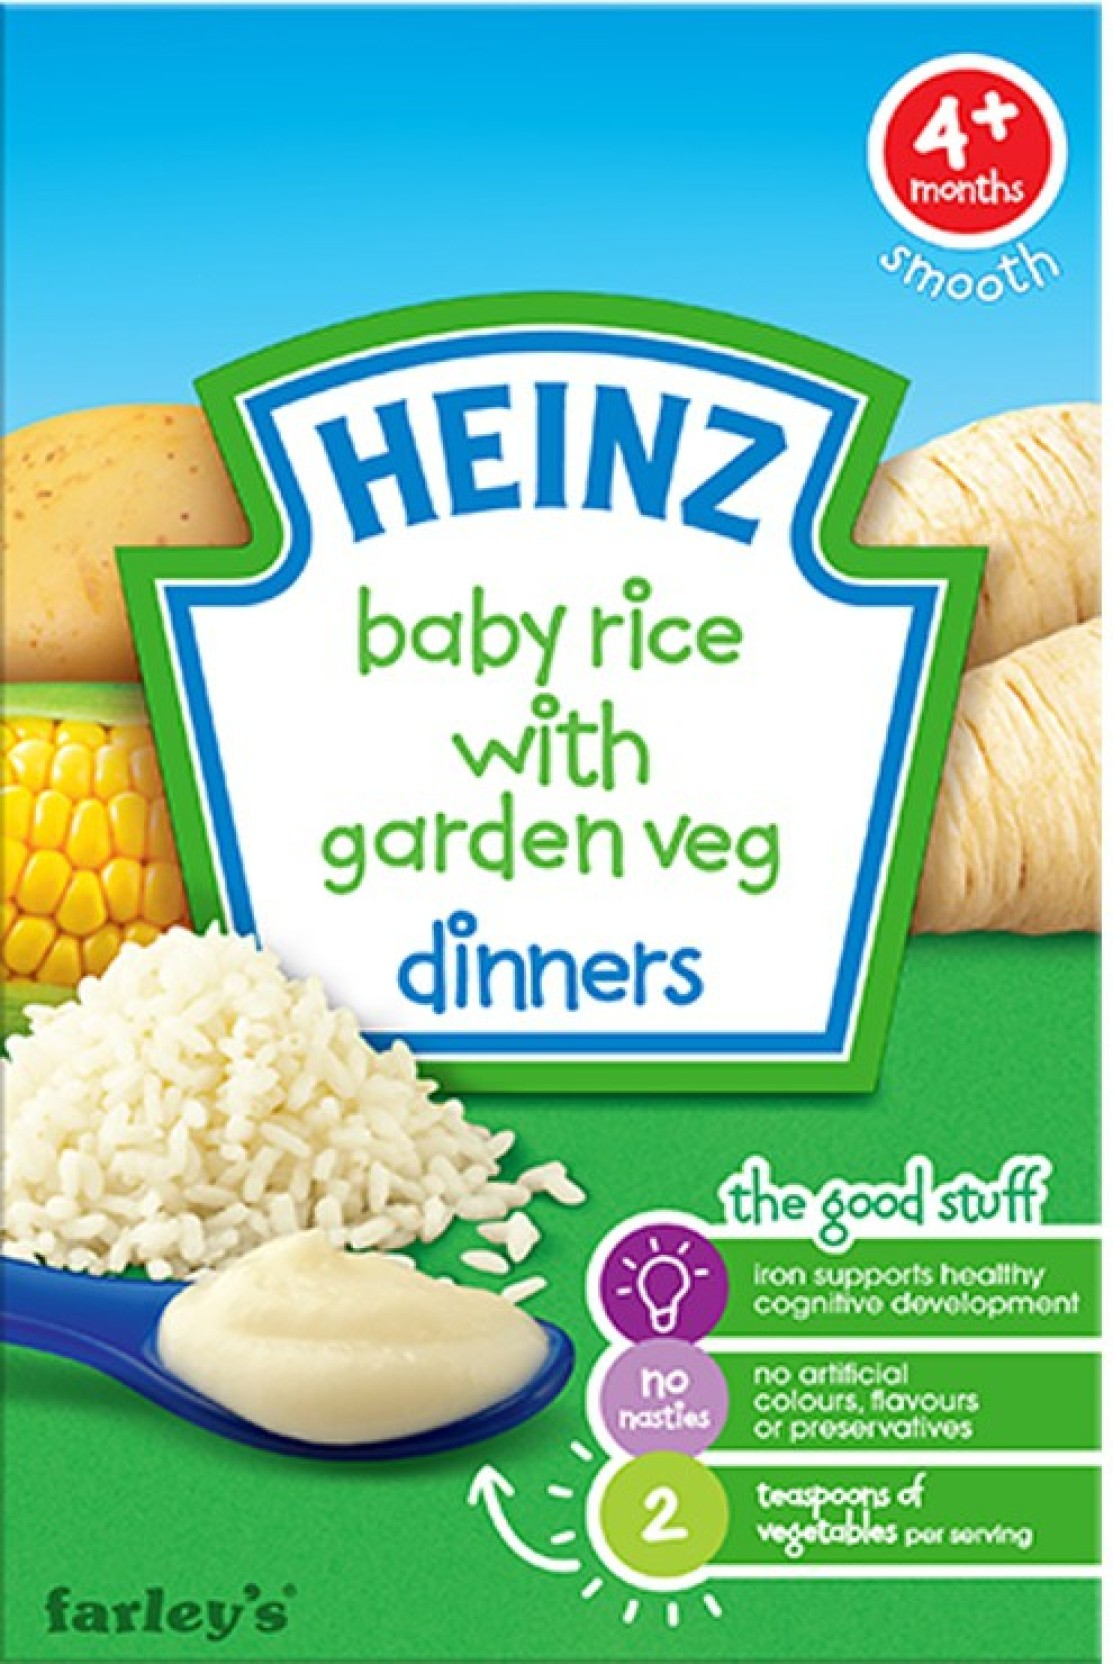 Heinz Baby Rice With Garden Veg Dinner Cereal 125g Price In Food Add To Cart